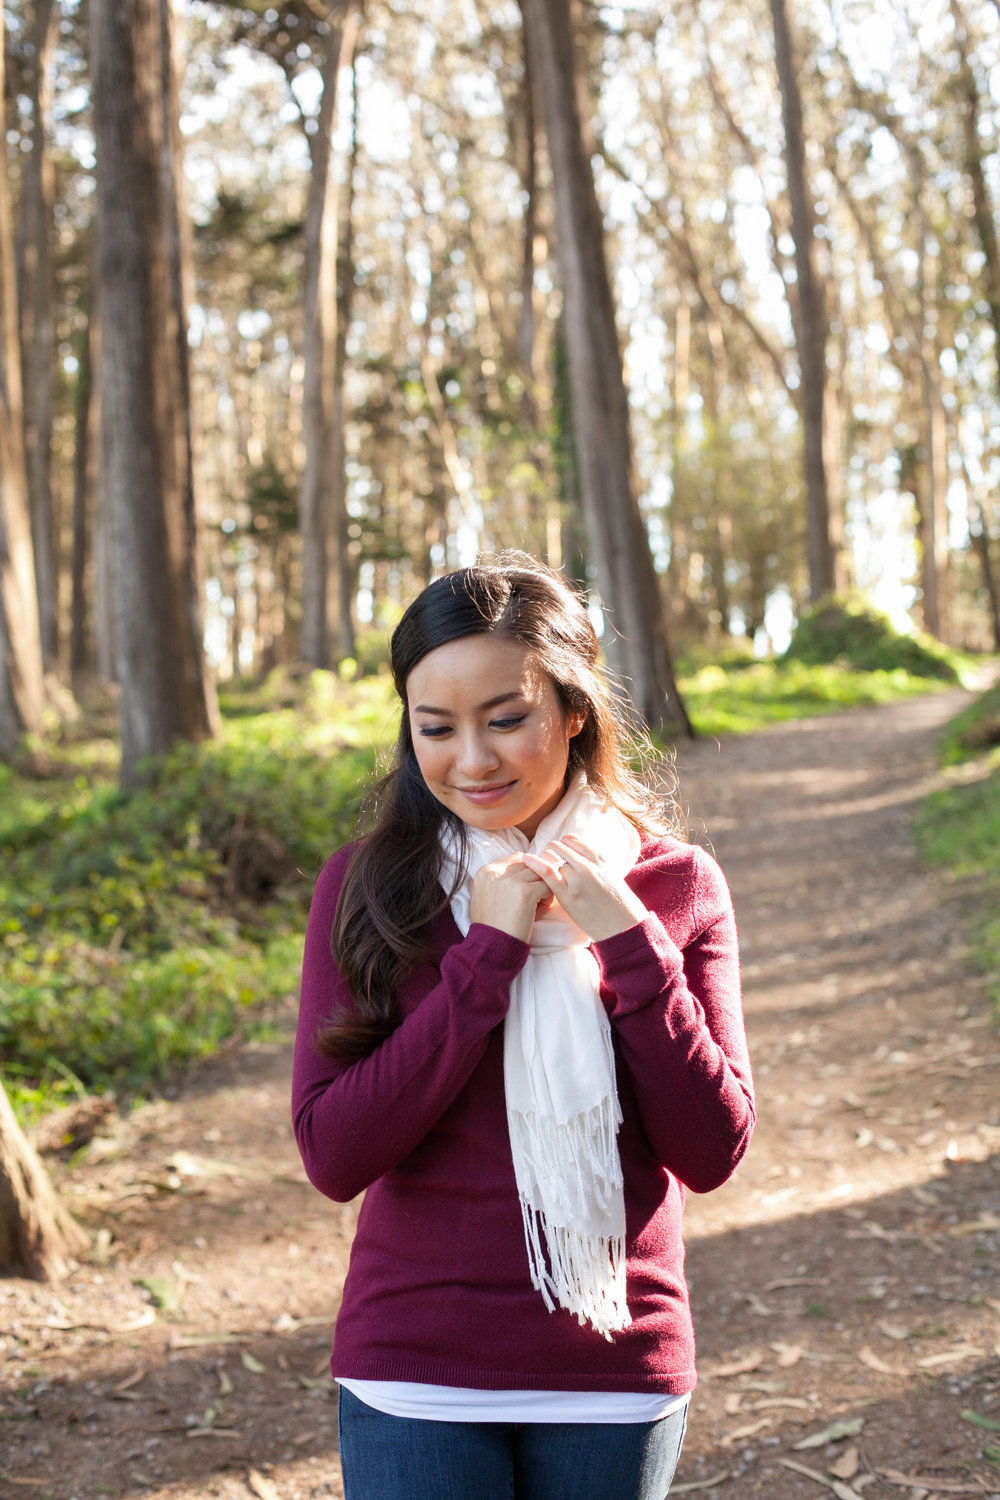 Meo Baaklini-San Francisco Presidio Engagement Photographer15.jpg